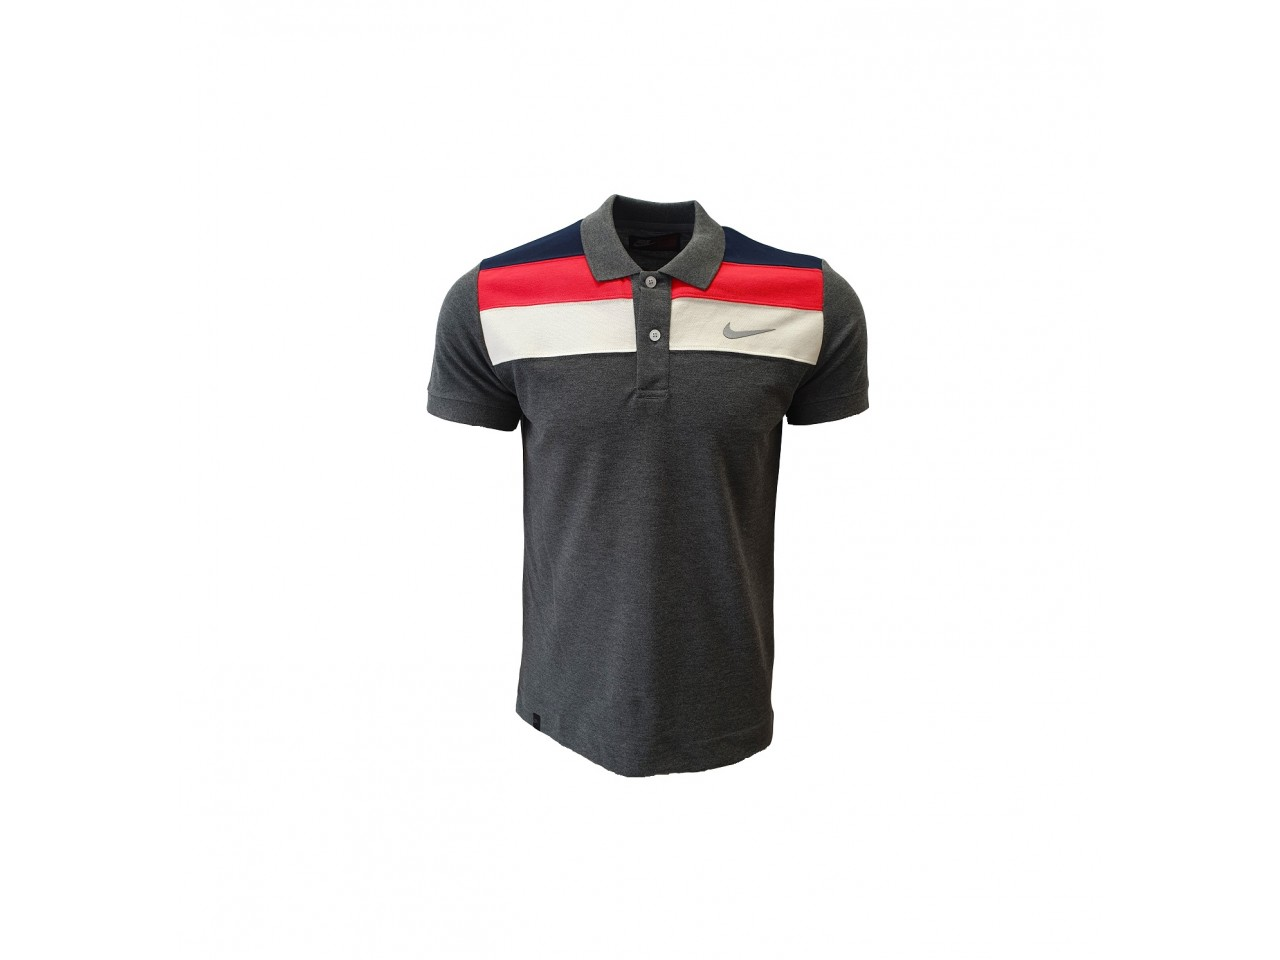 Nike Polo T-Shirt Dark Grey Dark Blue Red